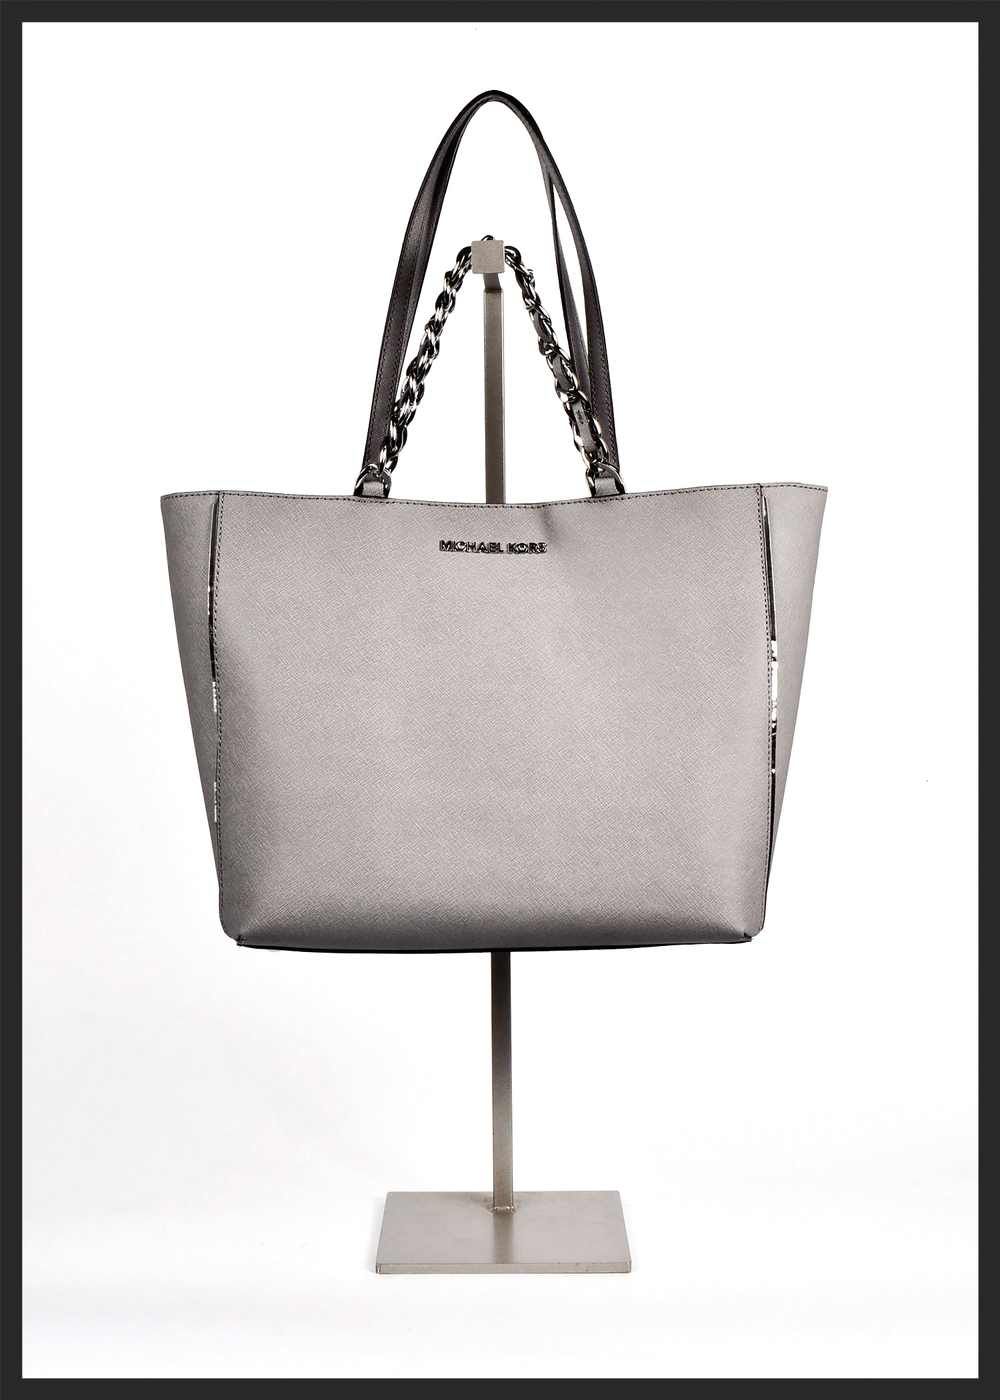 Silvery Sleek Michael Kors Bag